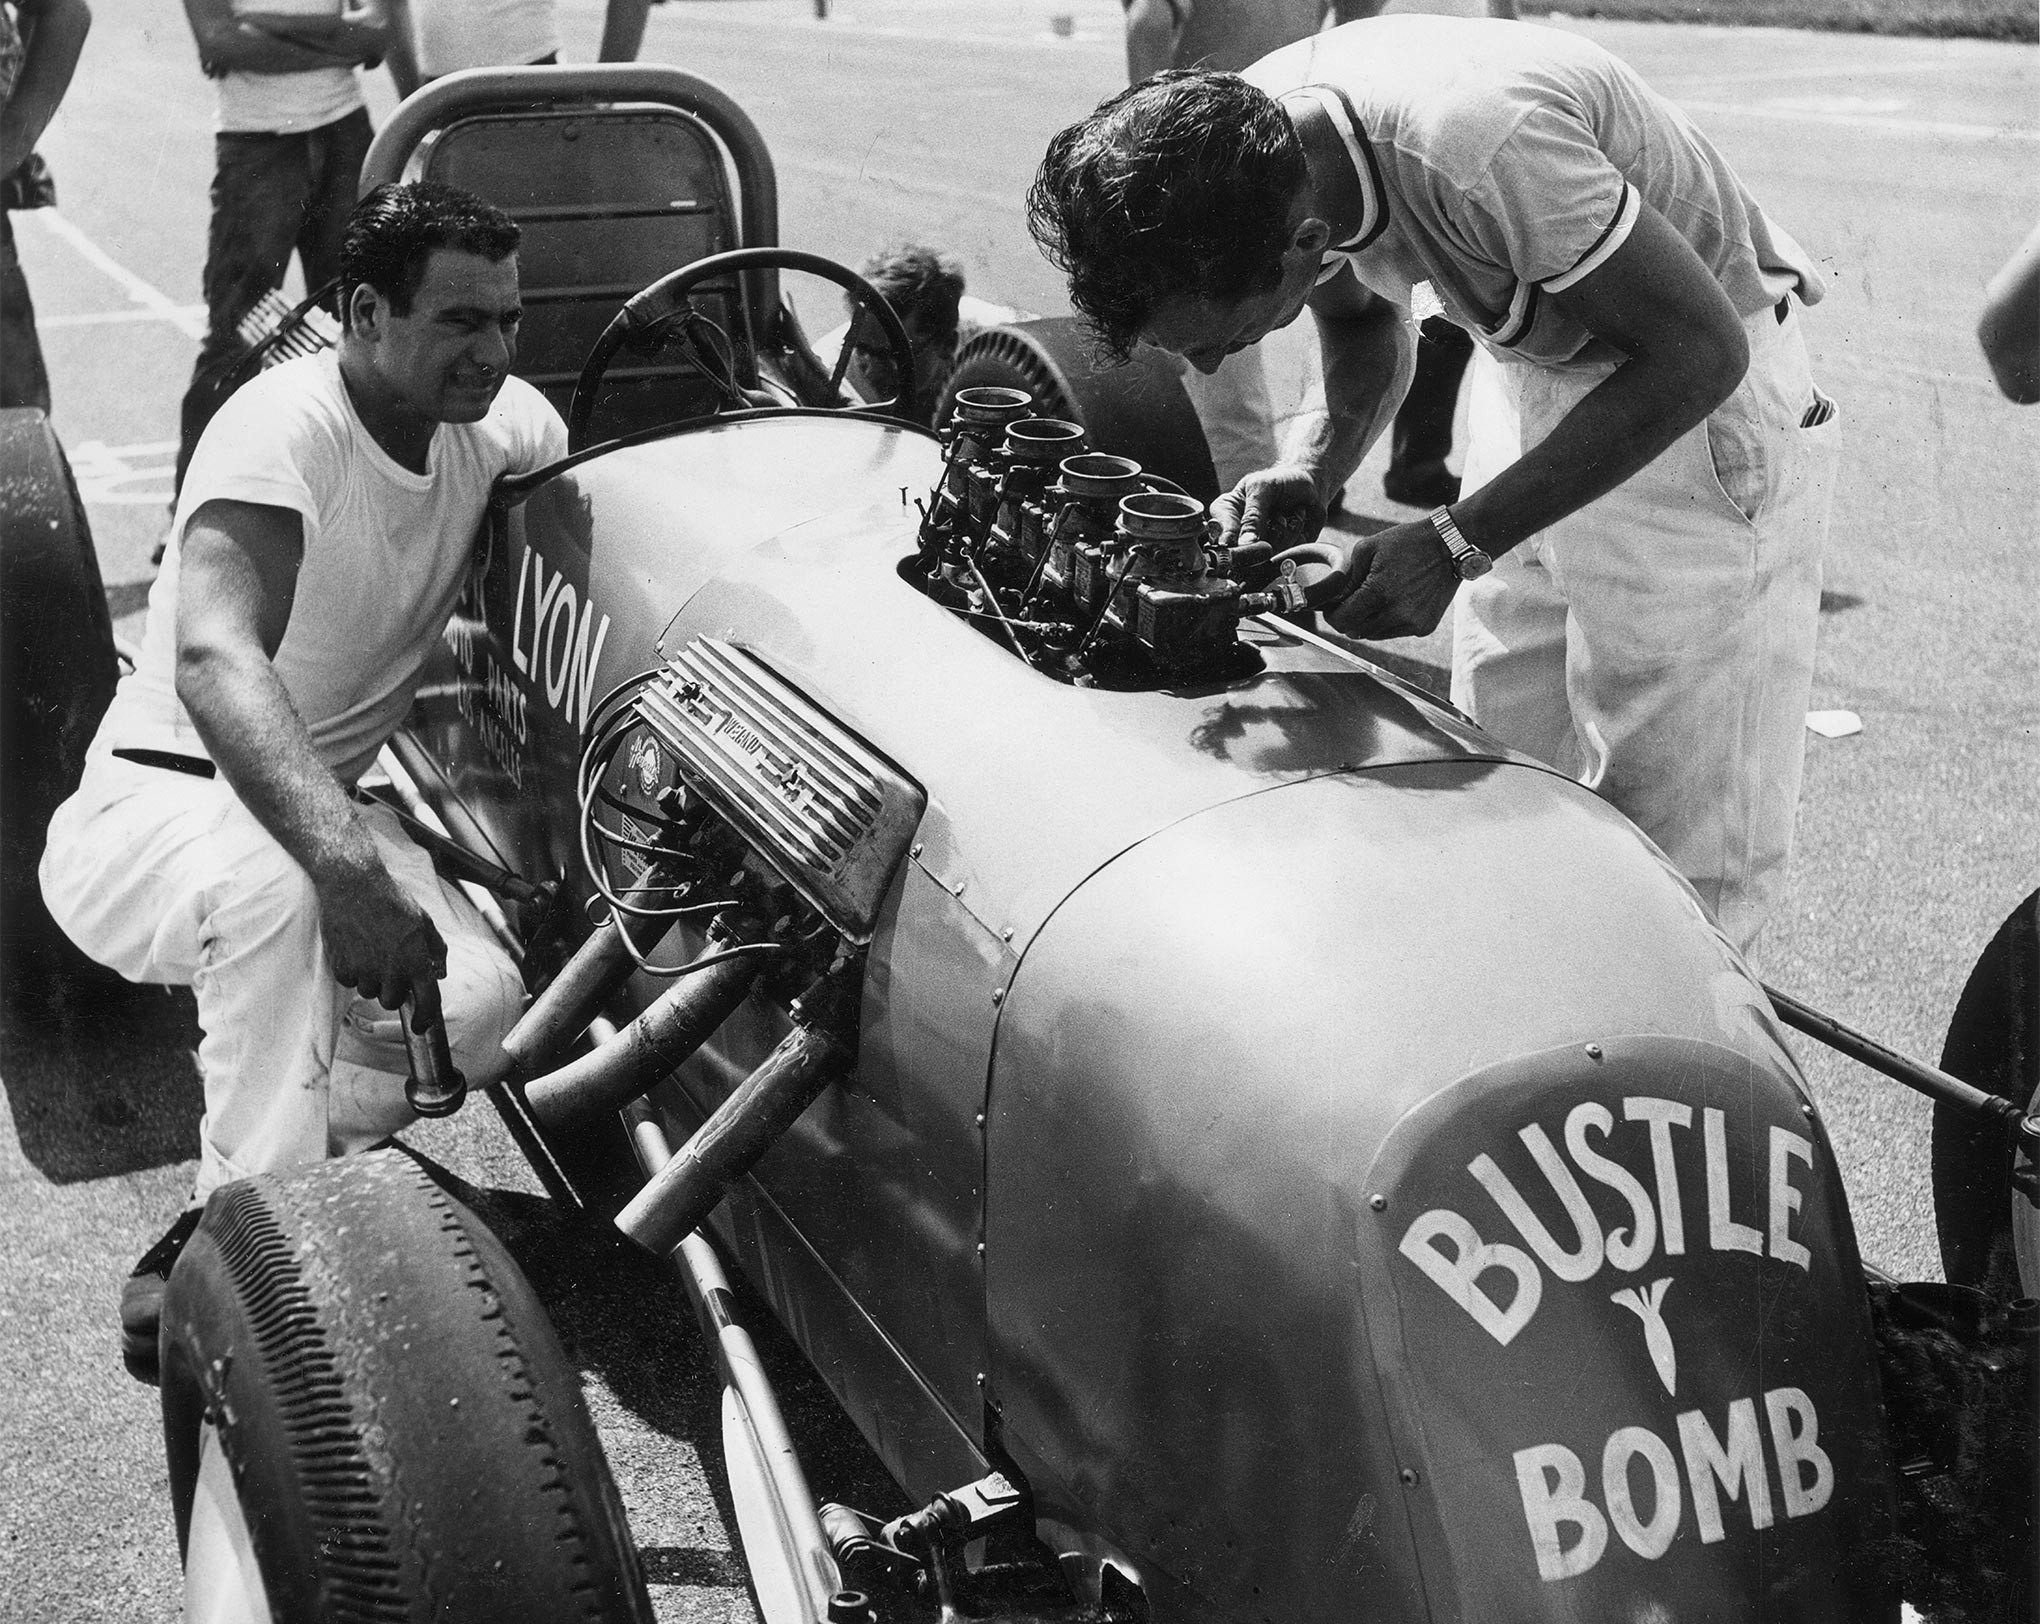 Goldberg (left) and Scotty (at carburetors), during the Annual Automobile Timing Association of America (ATAA) World Series of Drag Racing, Lawrenceville, Illinois.